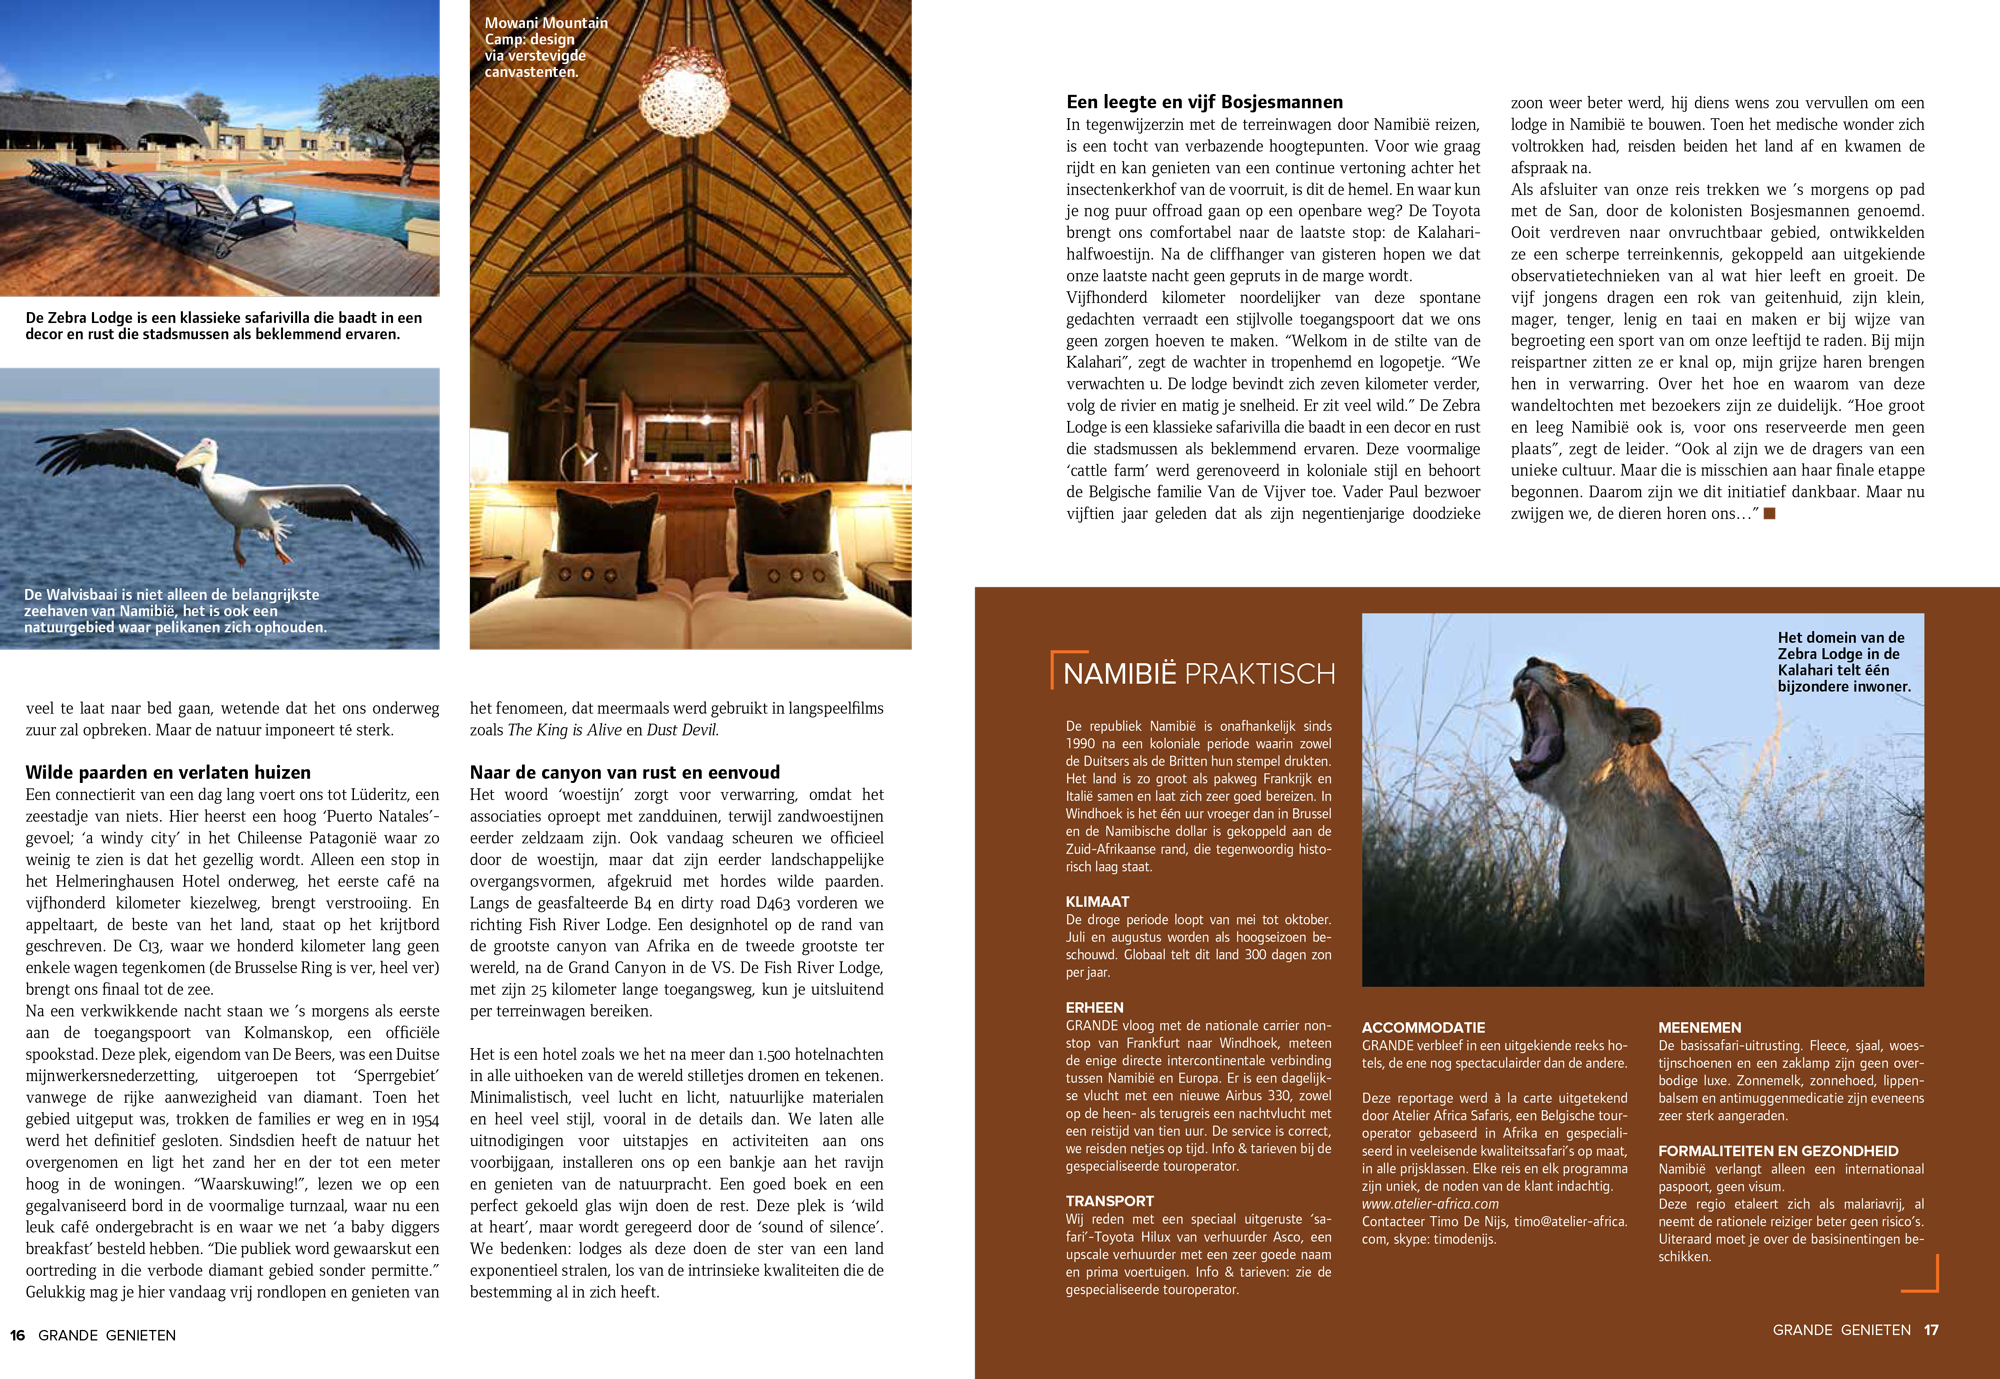 Atelier Africa Safaris - Namibia self drive safari